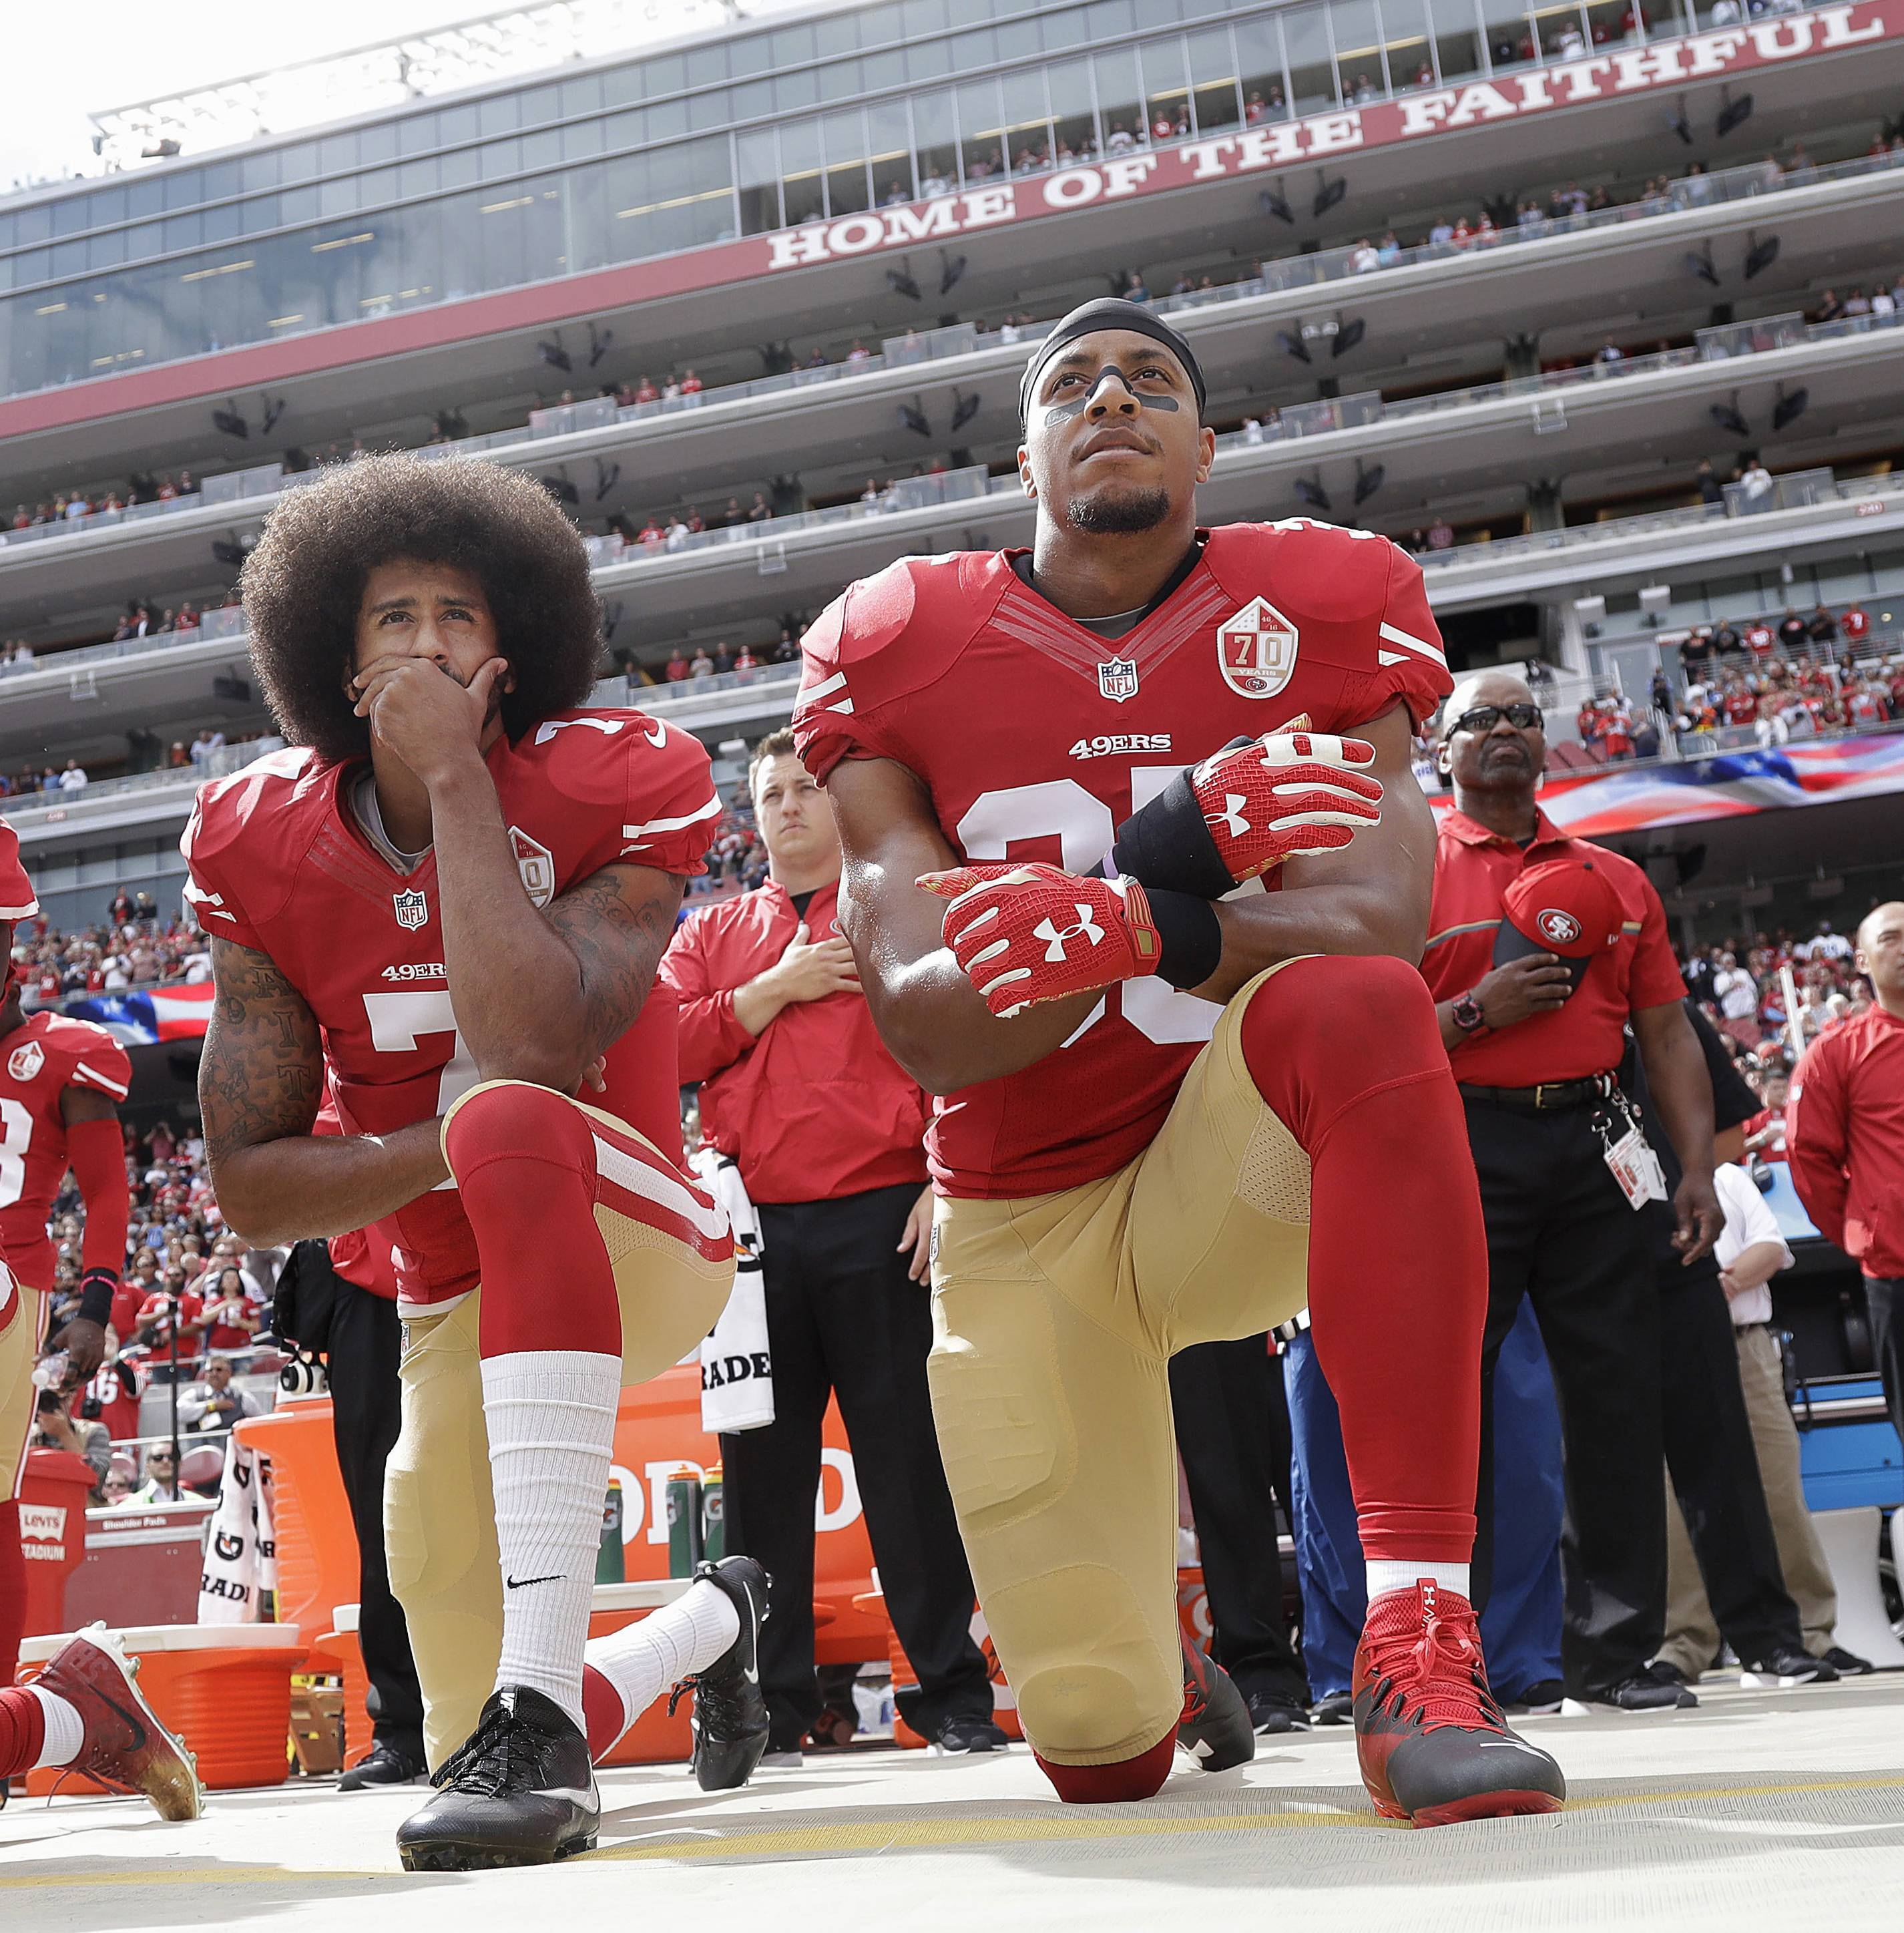 San Francisco 49ers quarterback Colin Kaepernick, left, and safety Eric Reid kneel during the national anthem before a against the Dallas Cowboys. Colin Kaepernick and Eric Reid have reached settlements on their collusion lawsuits against the NFL, the league said Friday.